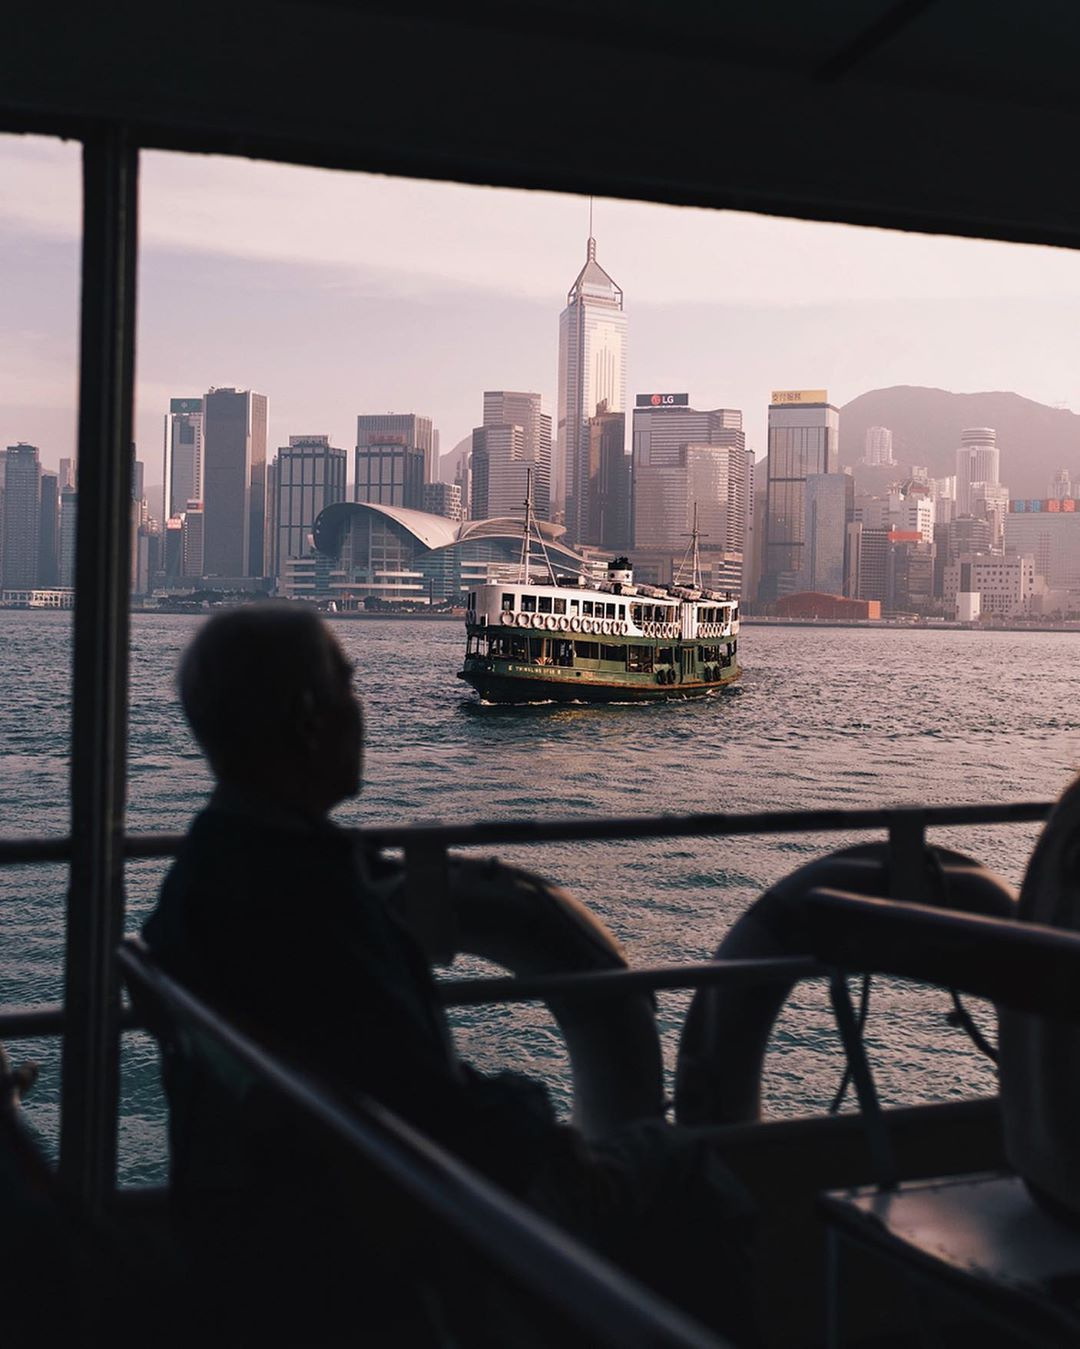 20 Hong Kong Photographers On Instagram Who Capture The Soul Of The City